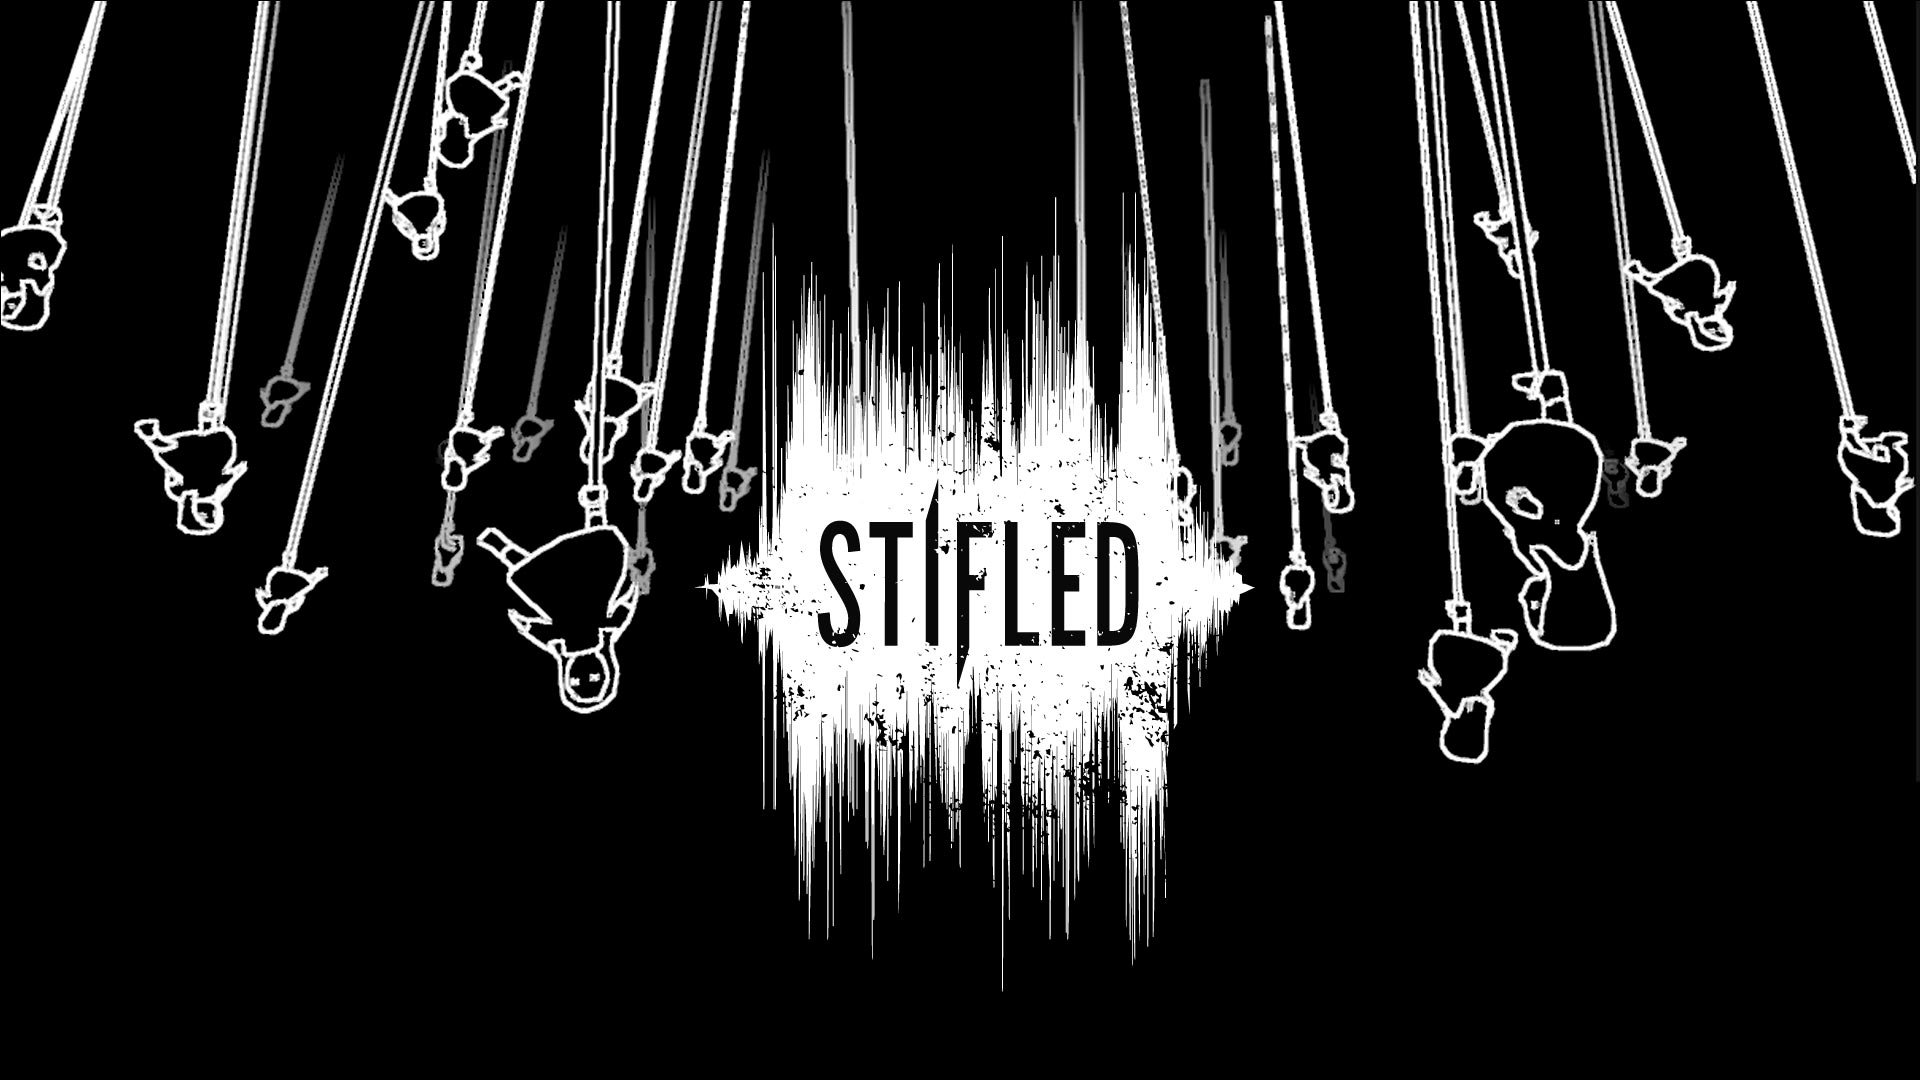 Stifled PSVR - VR4Player